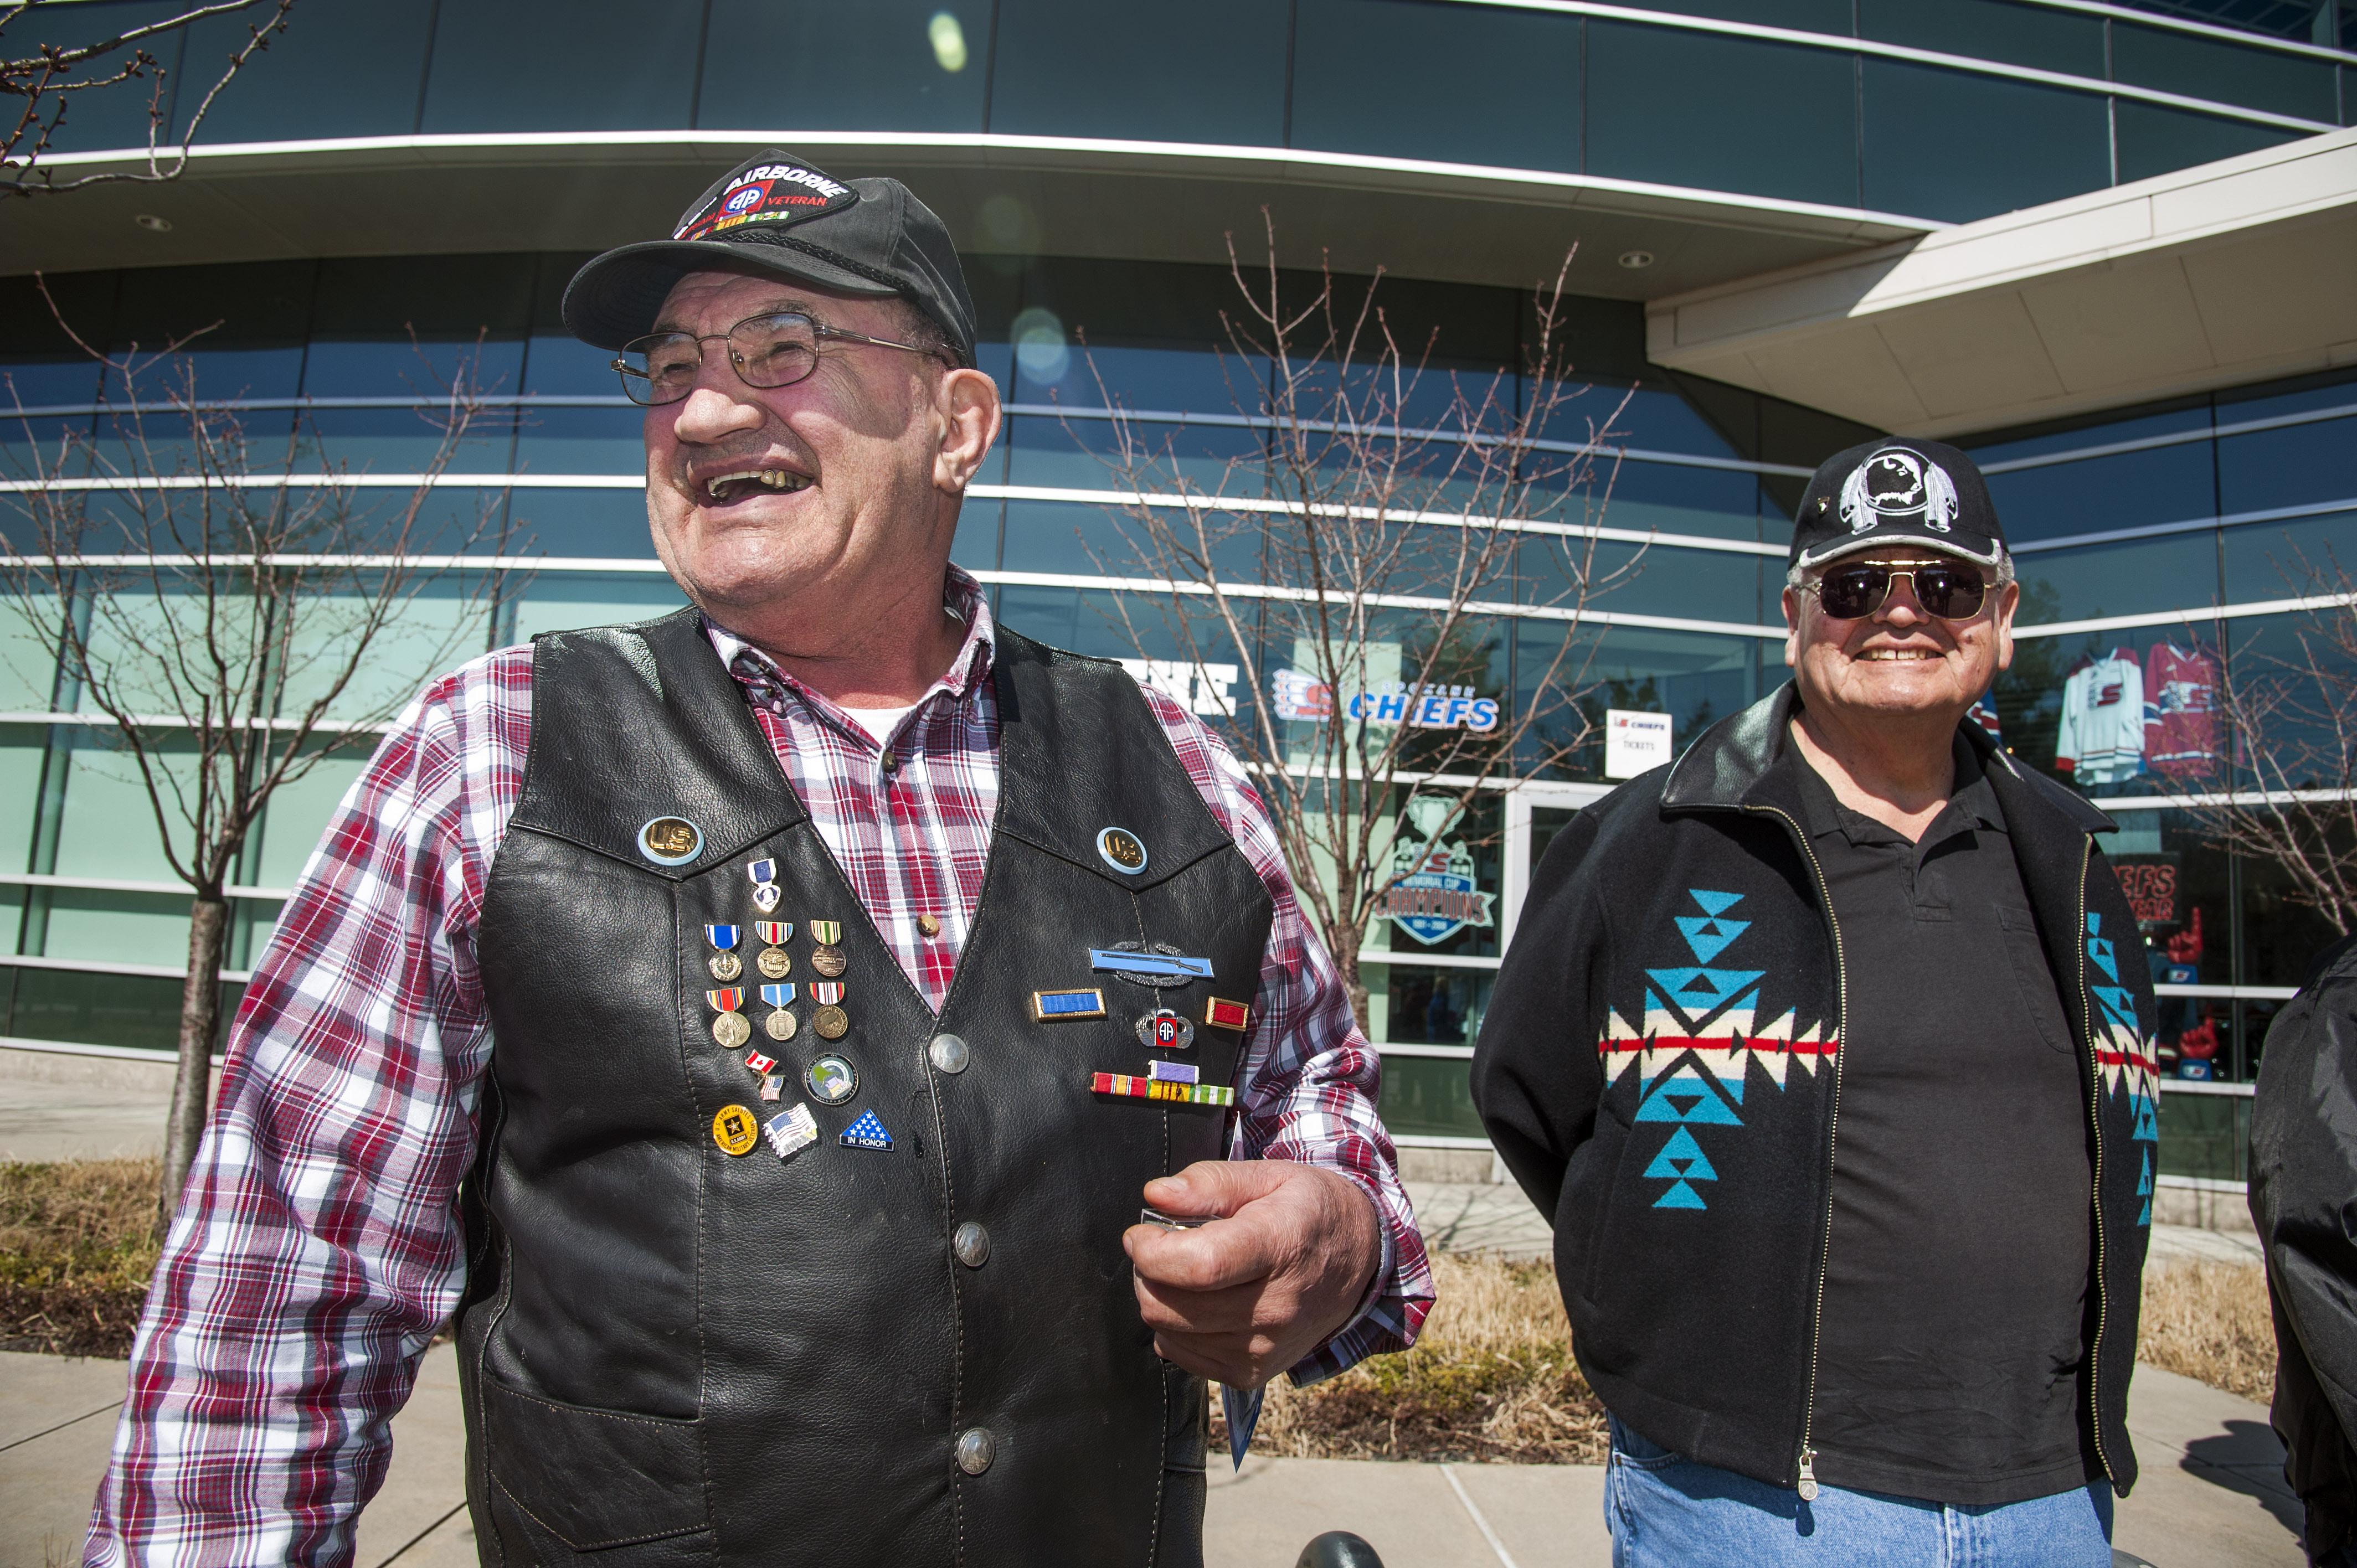 Vietnam vets honored at Spokane event | The Spokesman-Review